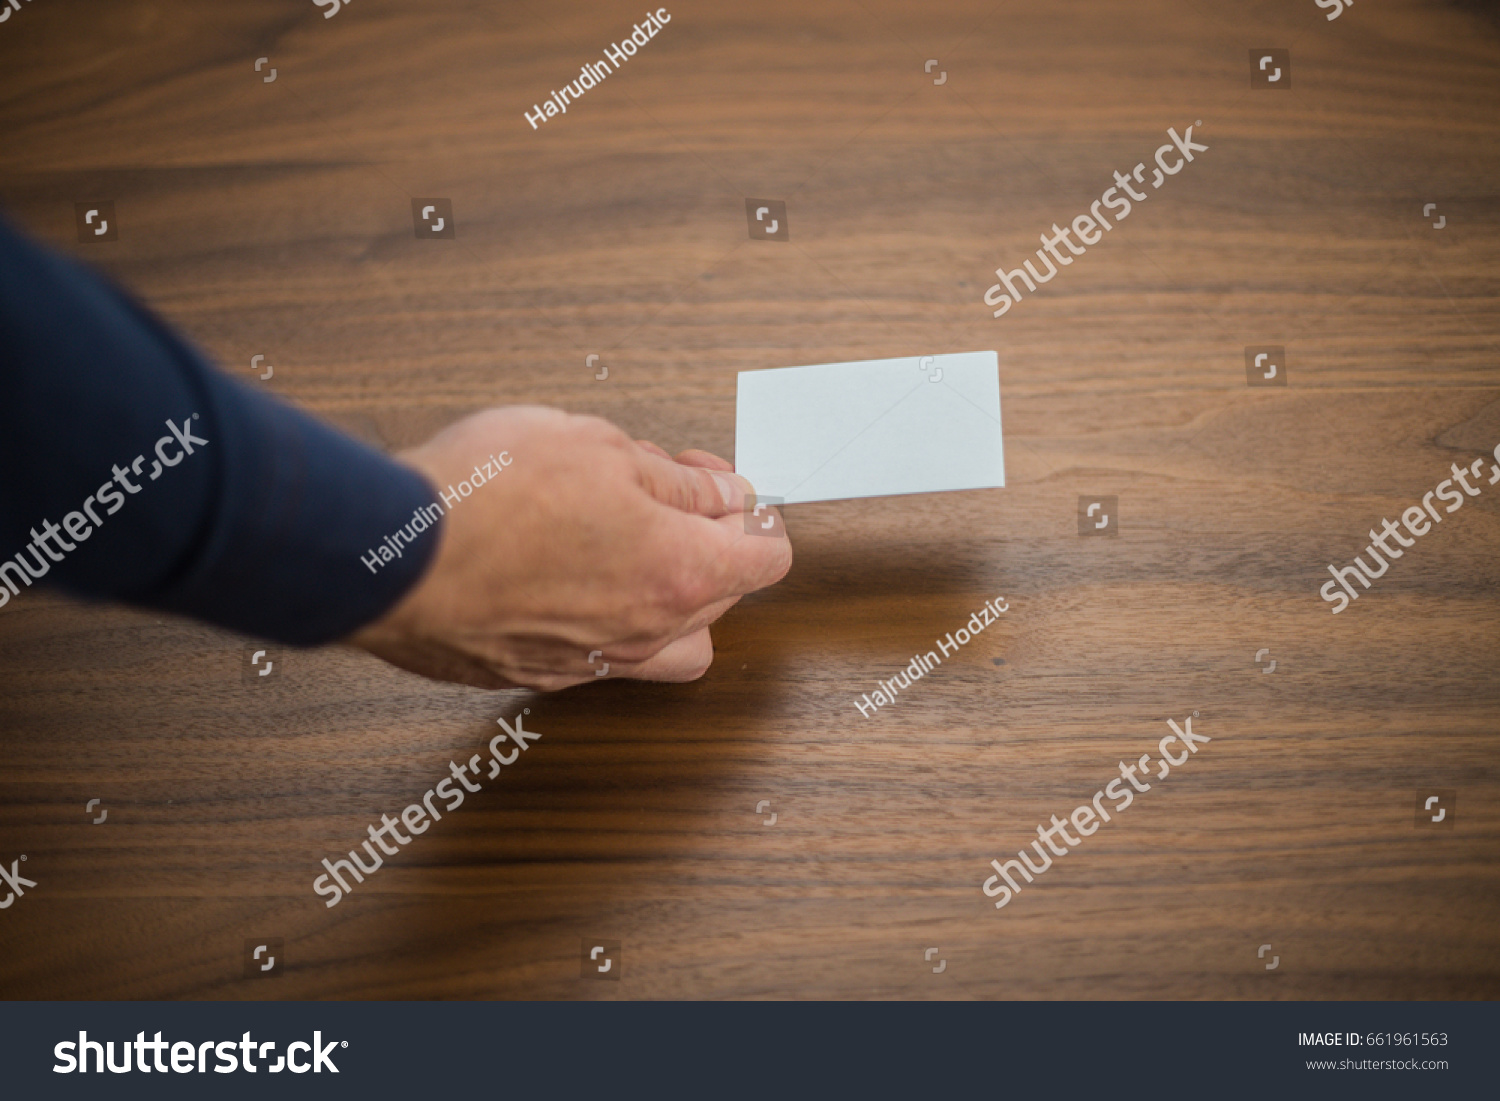 Bank card business card businessman holds stock photo 661961563 bank card business card businessman holds card in hand finances jobs magicingreecefo Choice Image